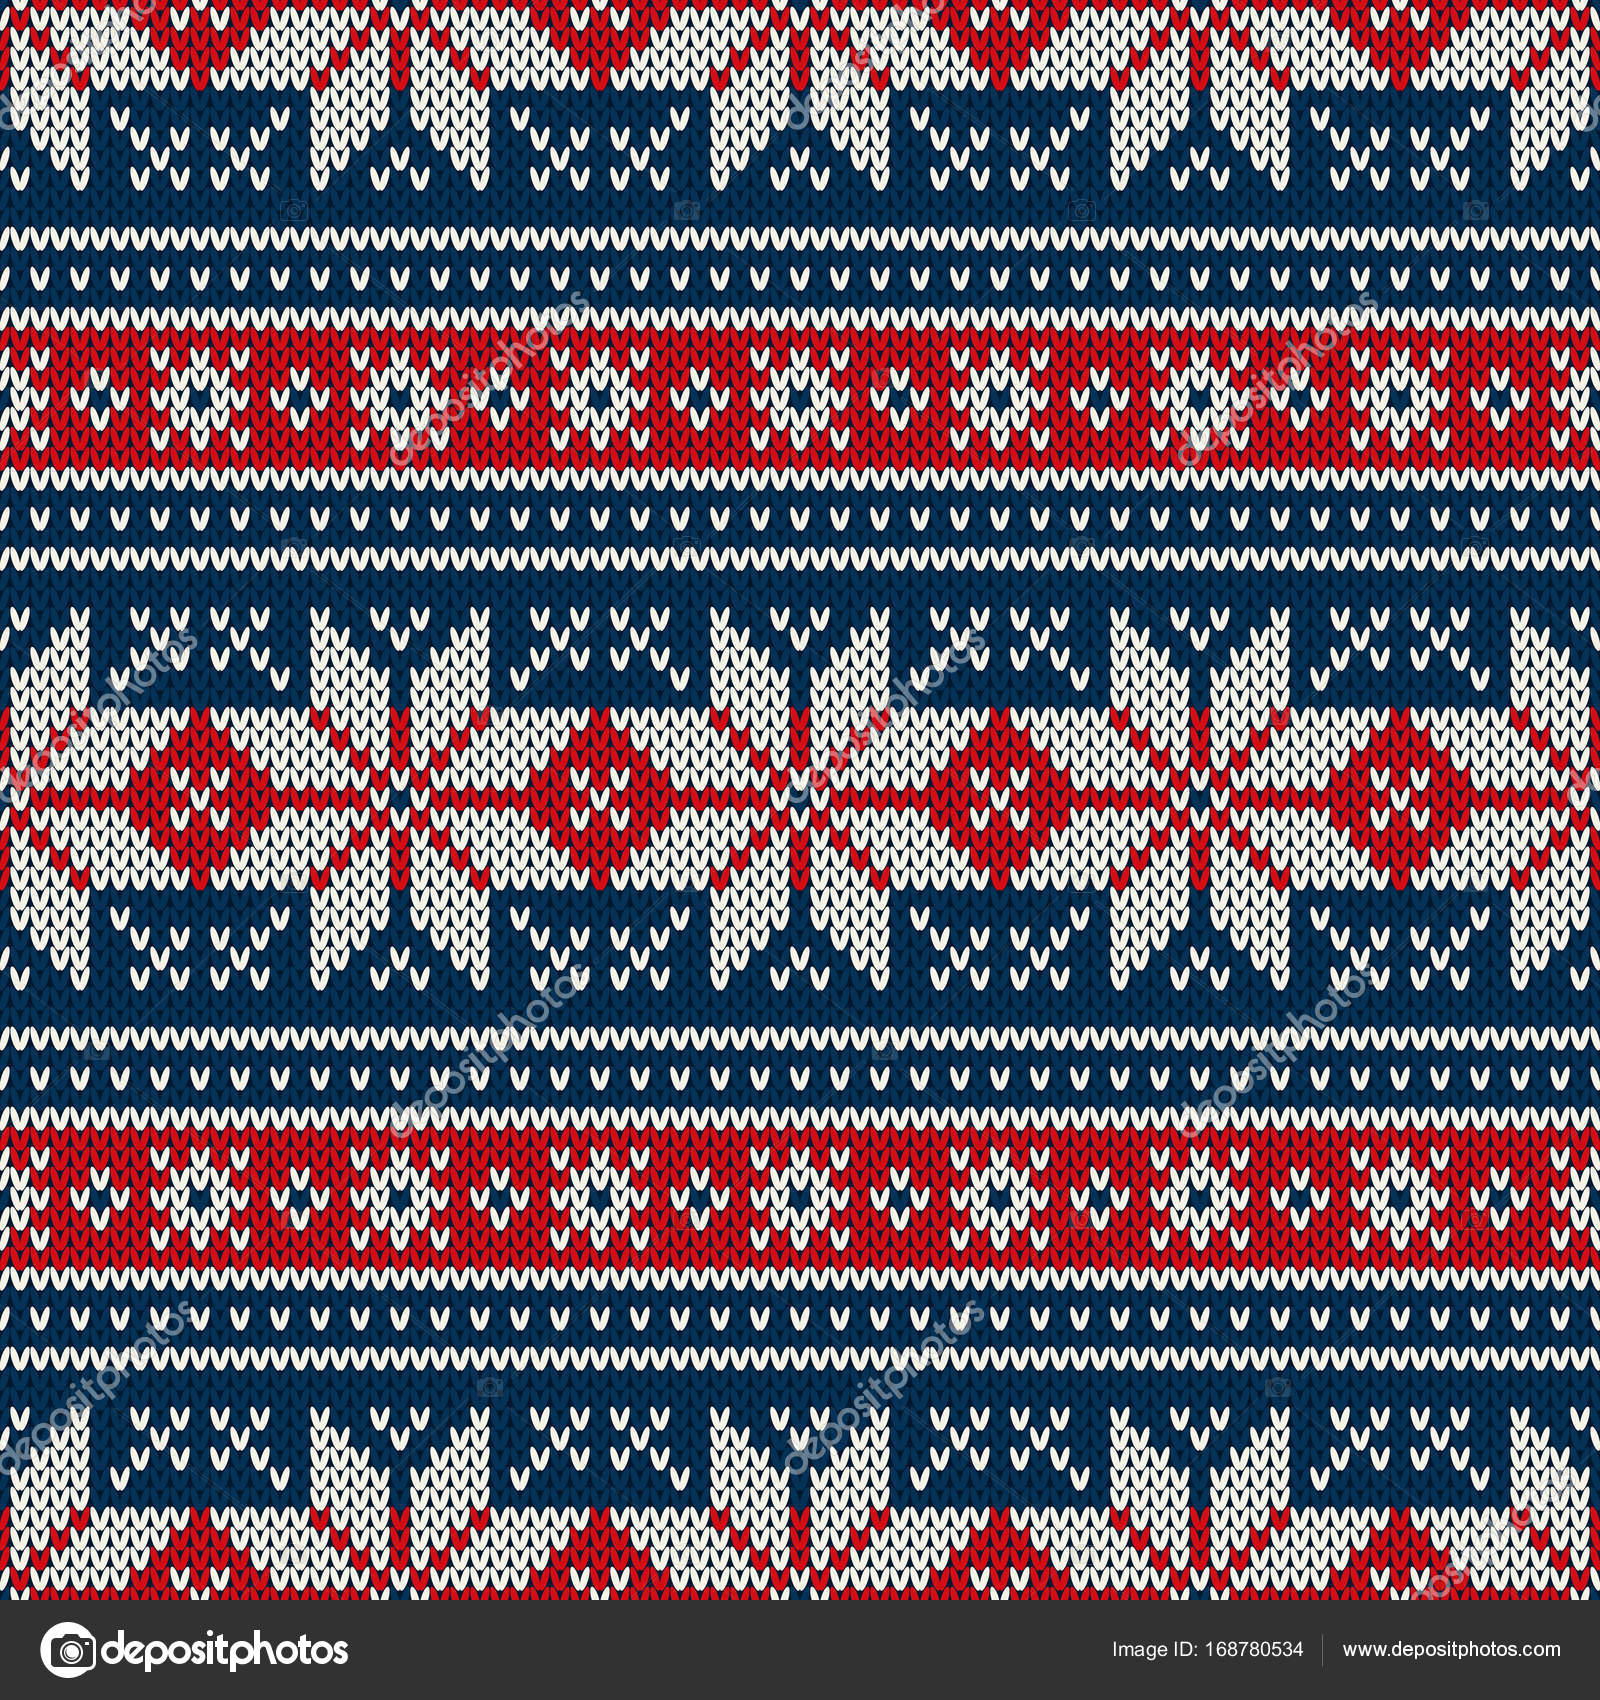 04377c54102119 Winter Holiday Knitted Pattern with Snowflakes. Fair Isle Knitting Sweater  Design. Seamless Christmas and